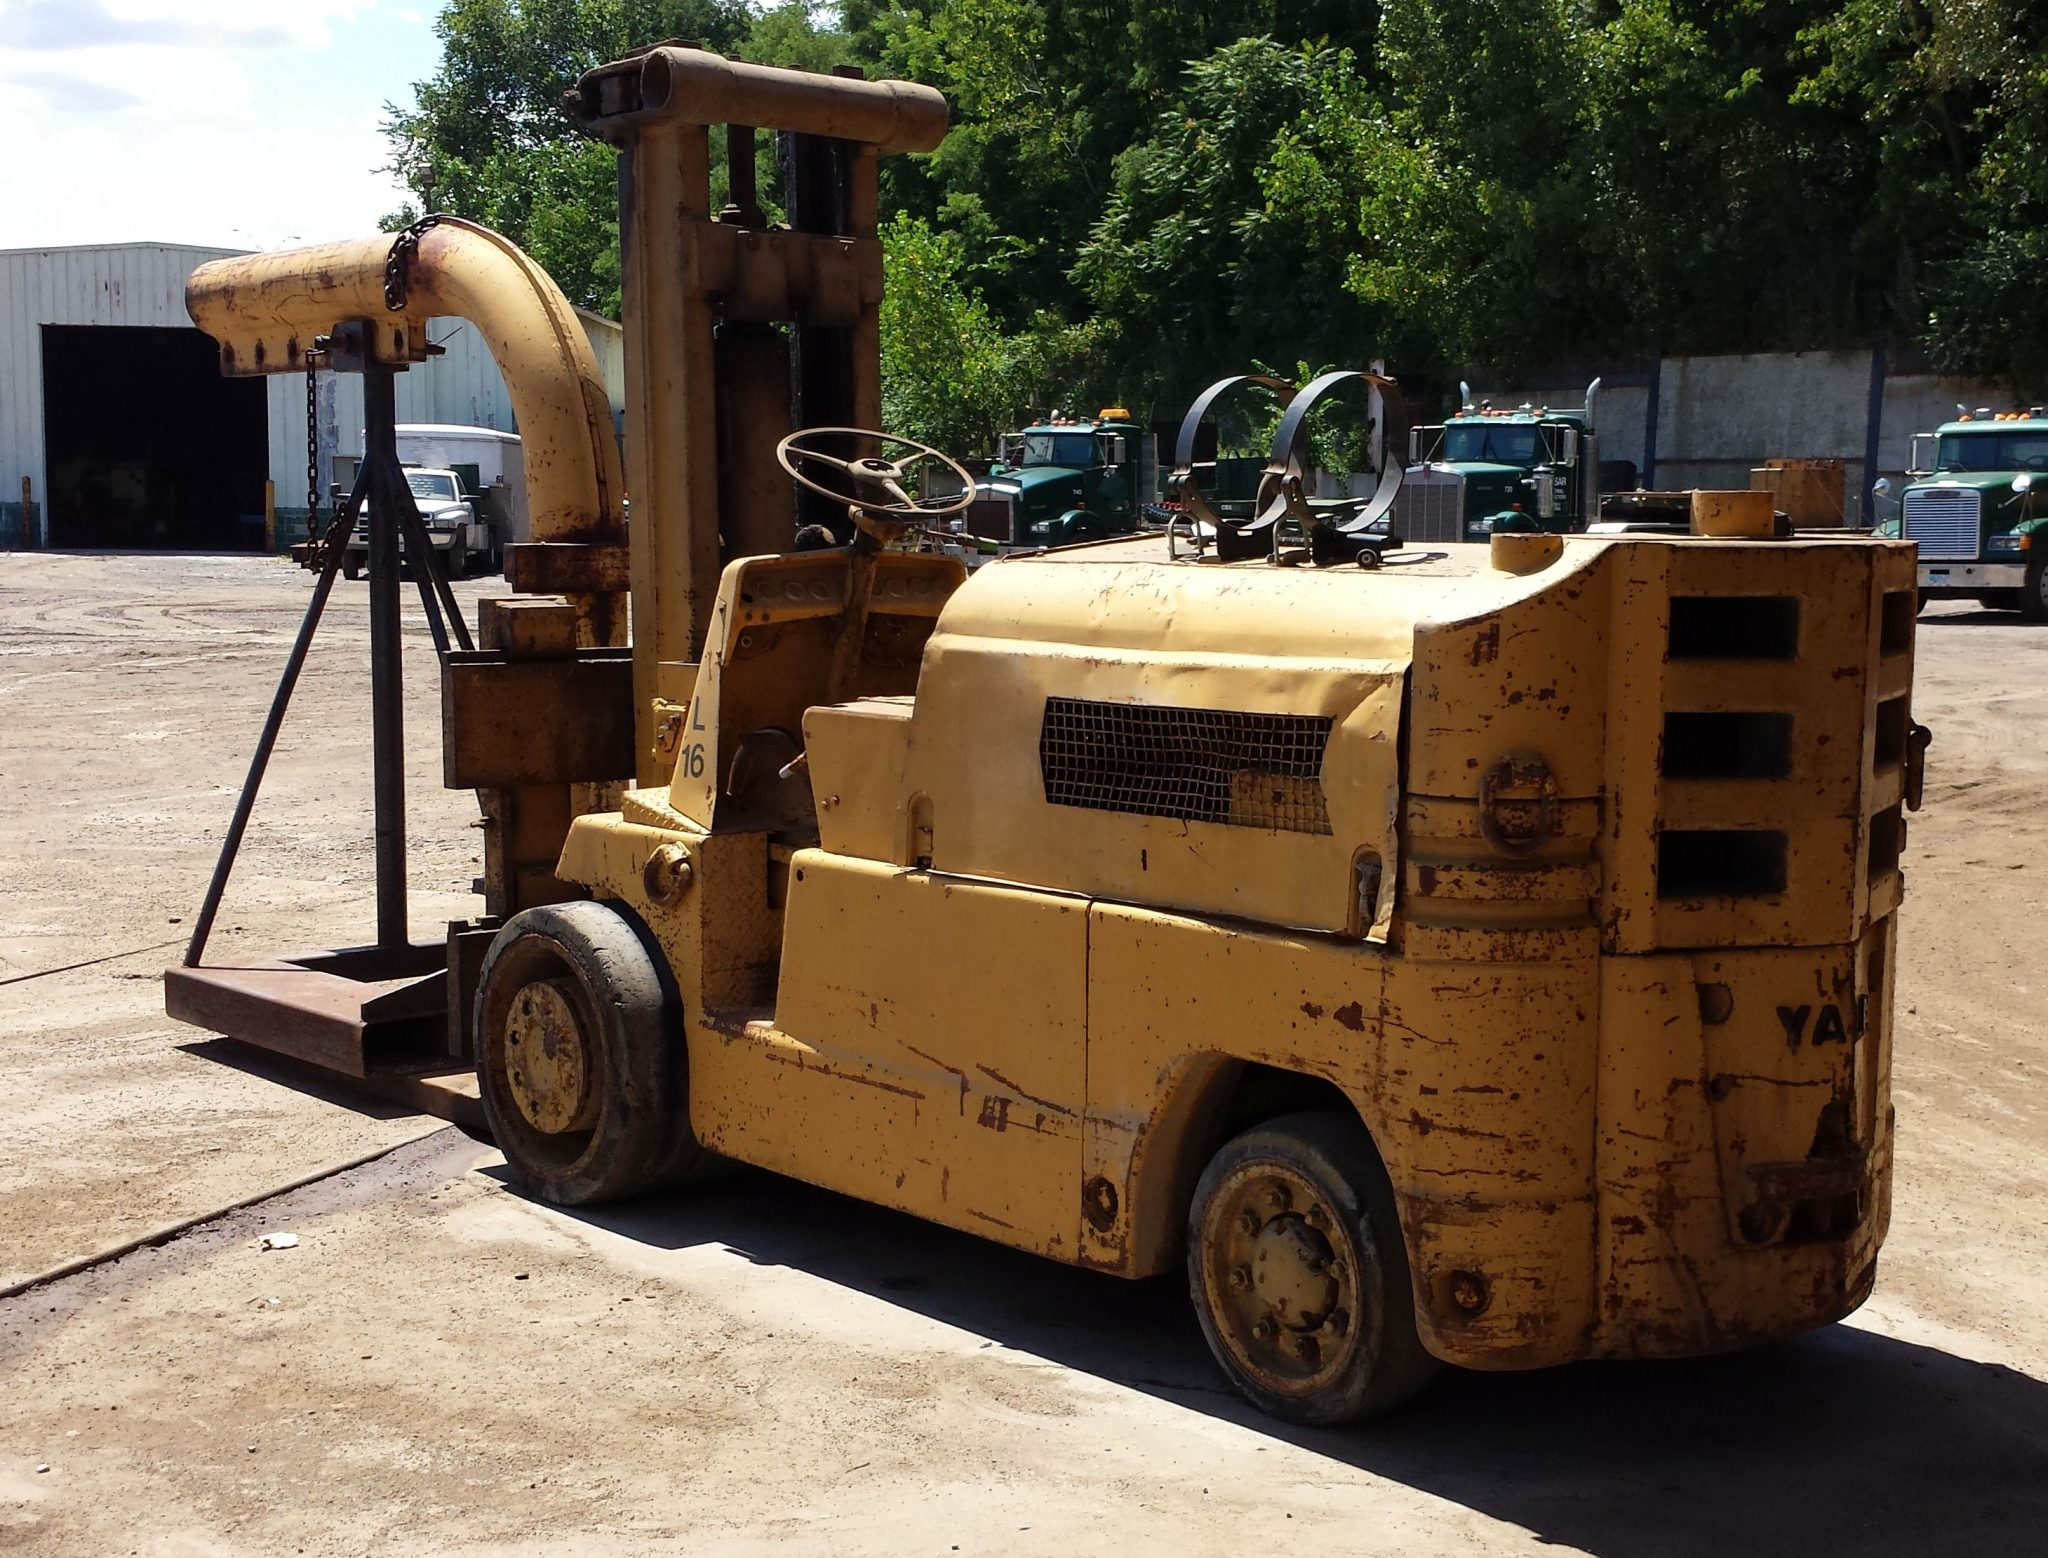 28 000lb ugly towmotor forklift for sale call 616 200 4308 for Forklift motor for sale